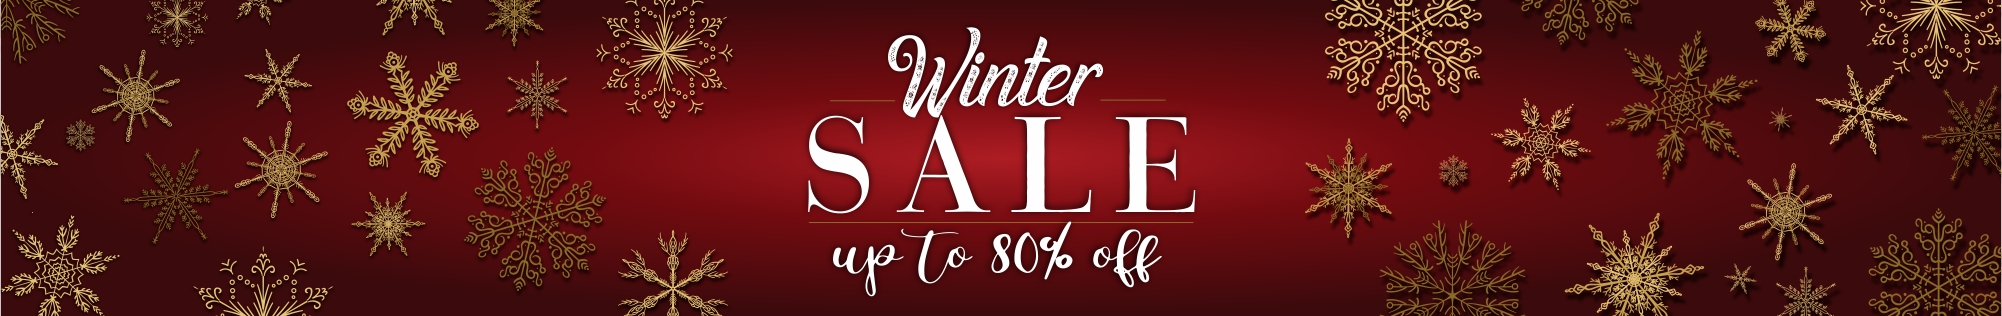 Winter sale - up to 80% off